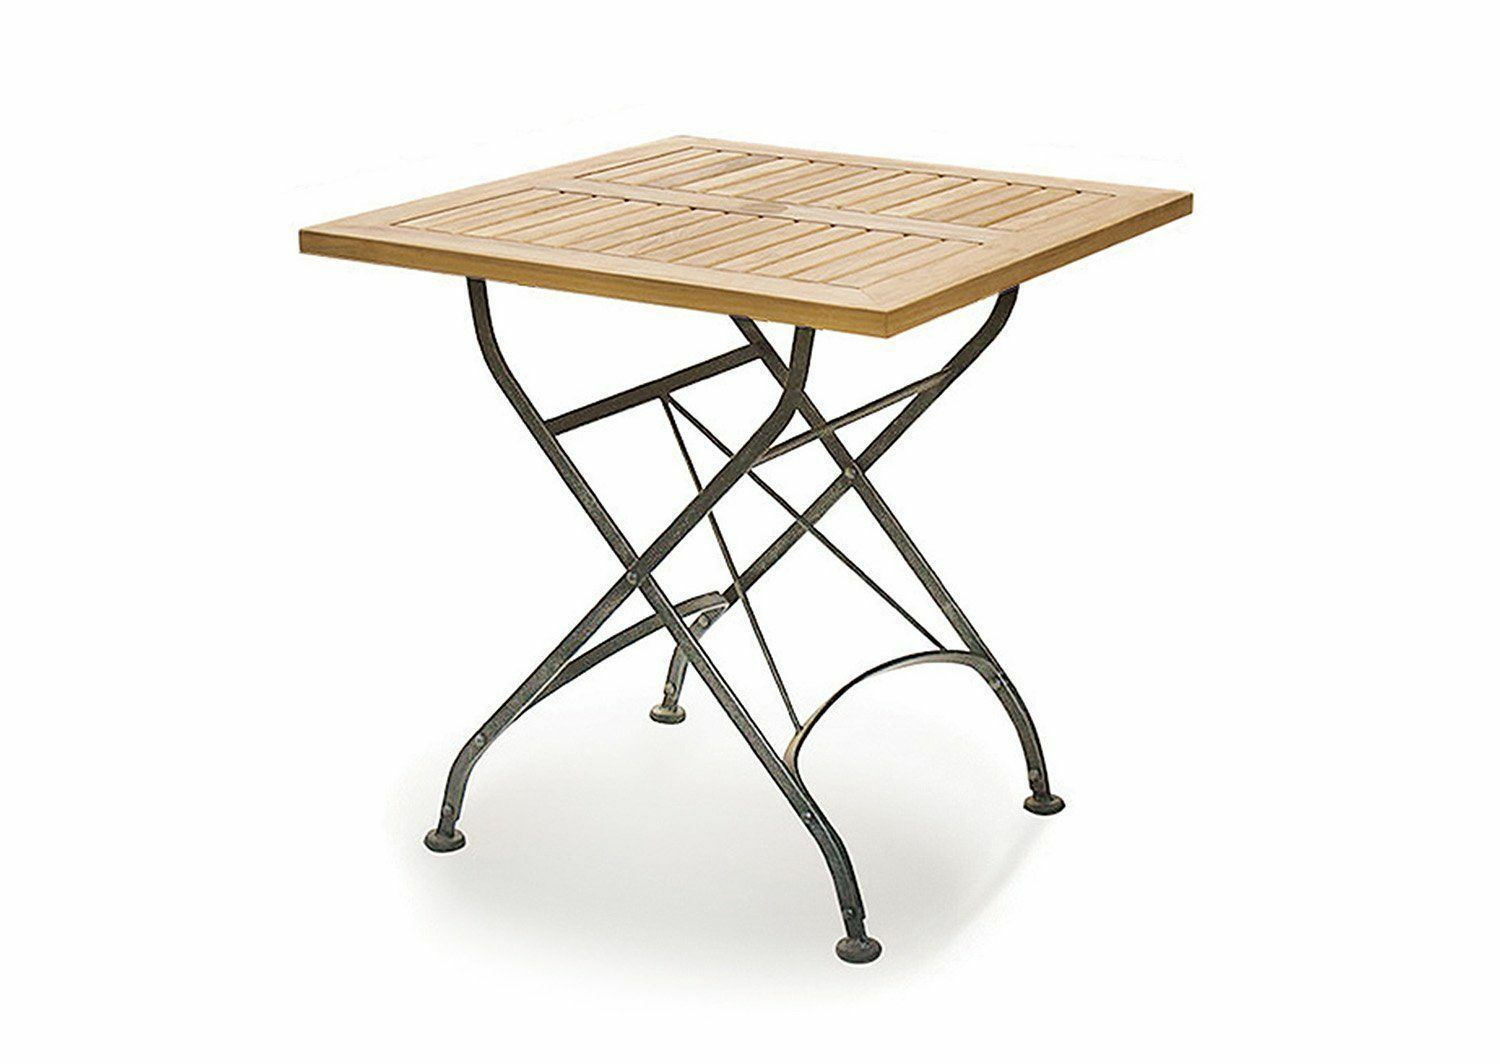 Café square folding bistro table teak and metal 0 6 m fully assembled